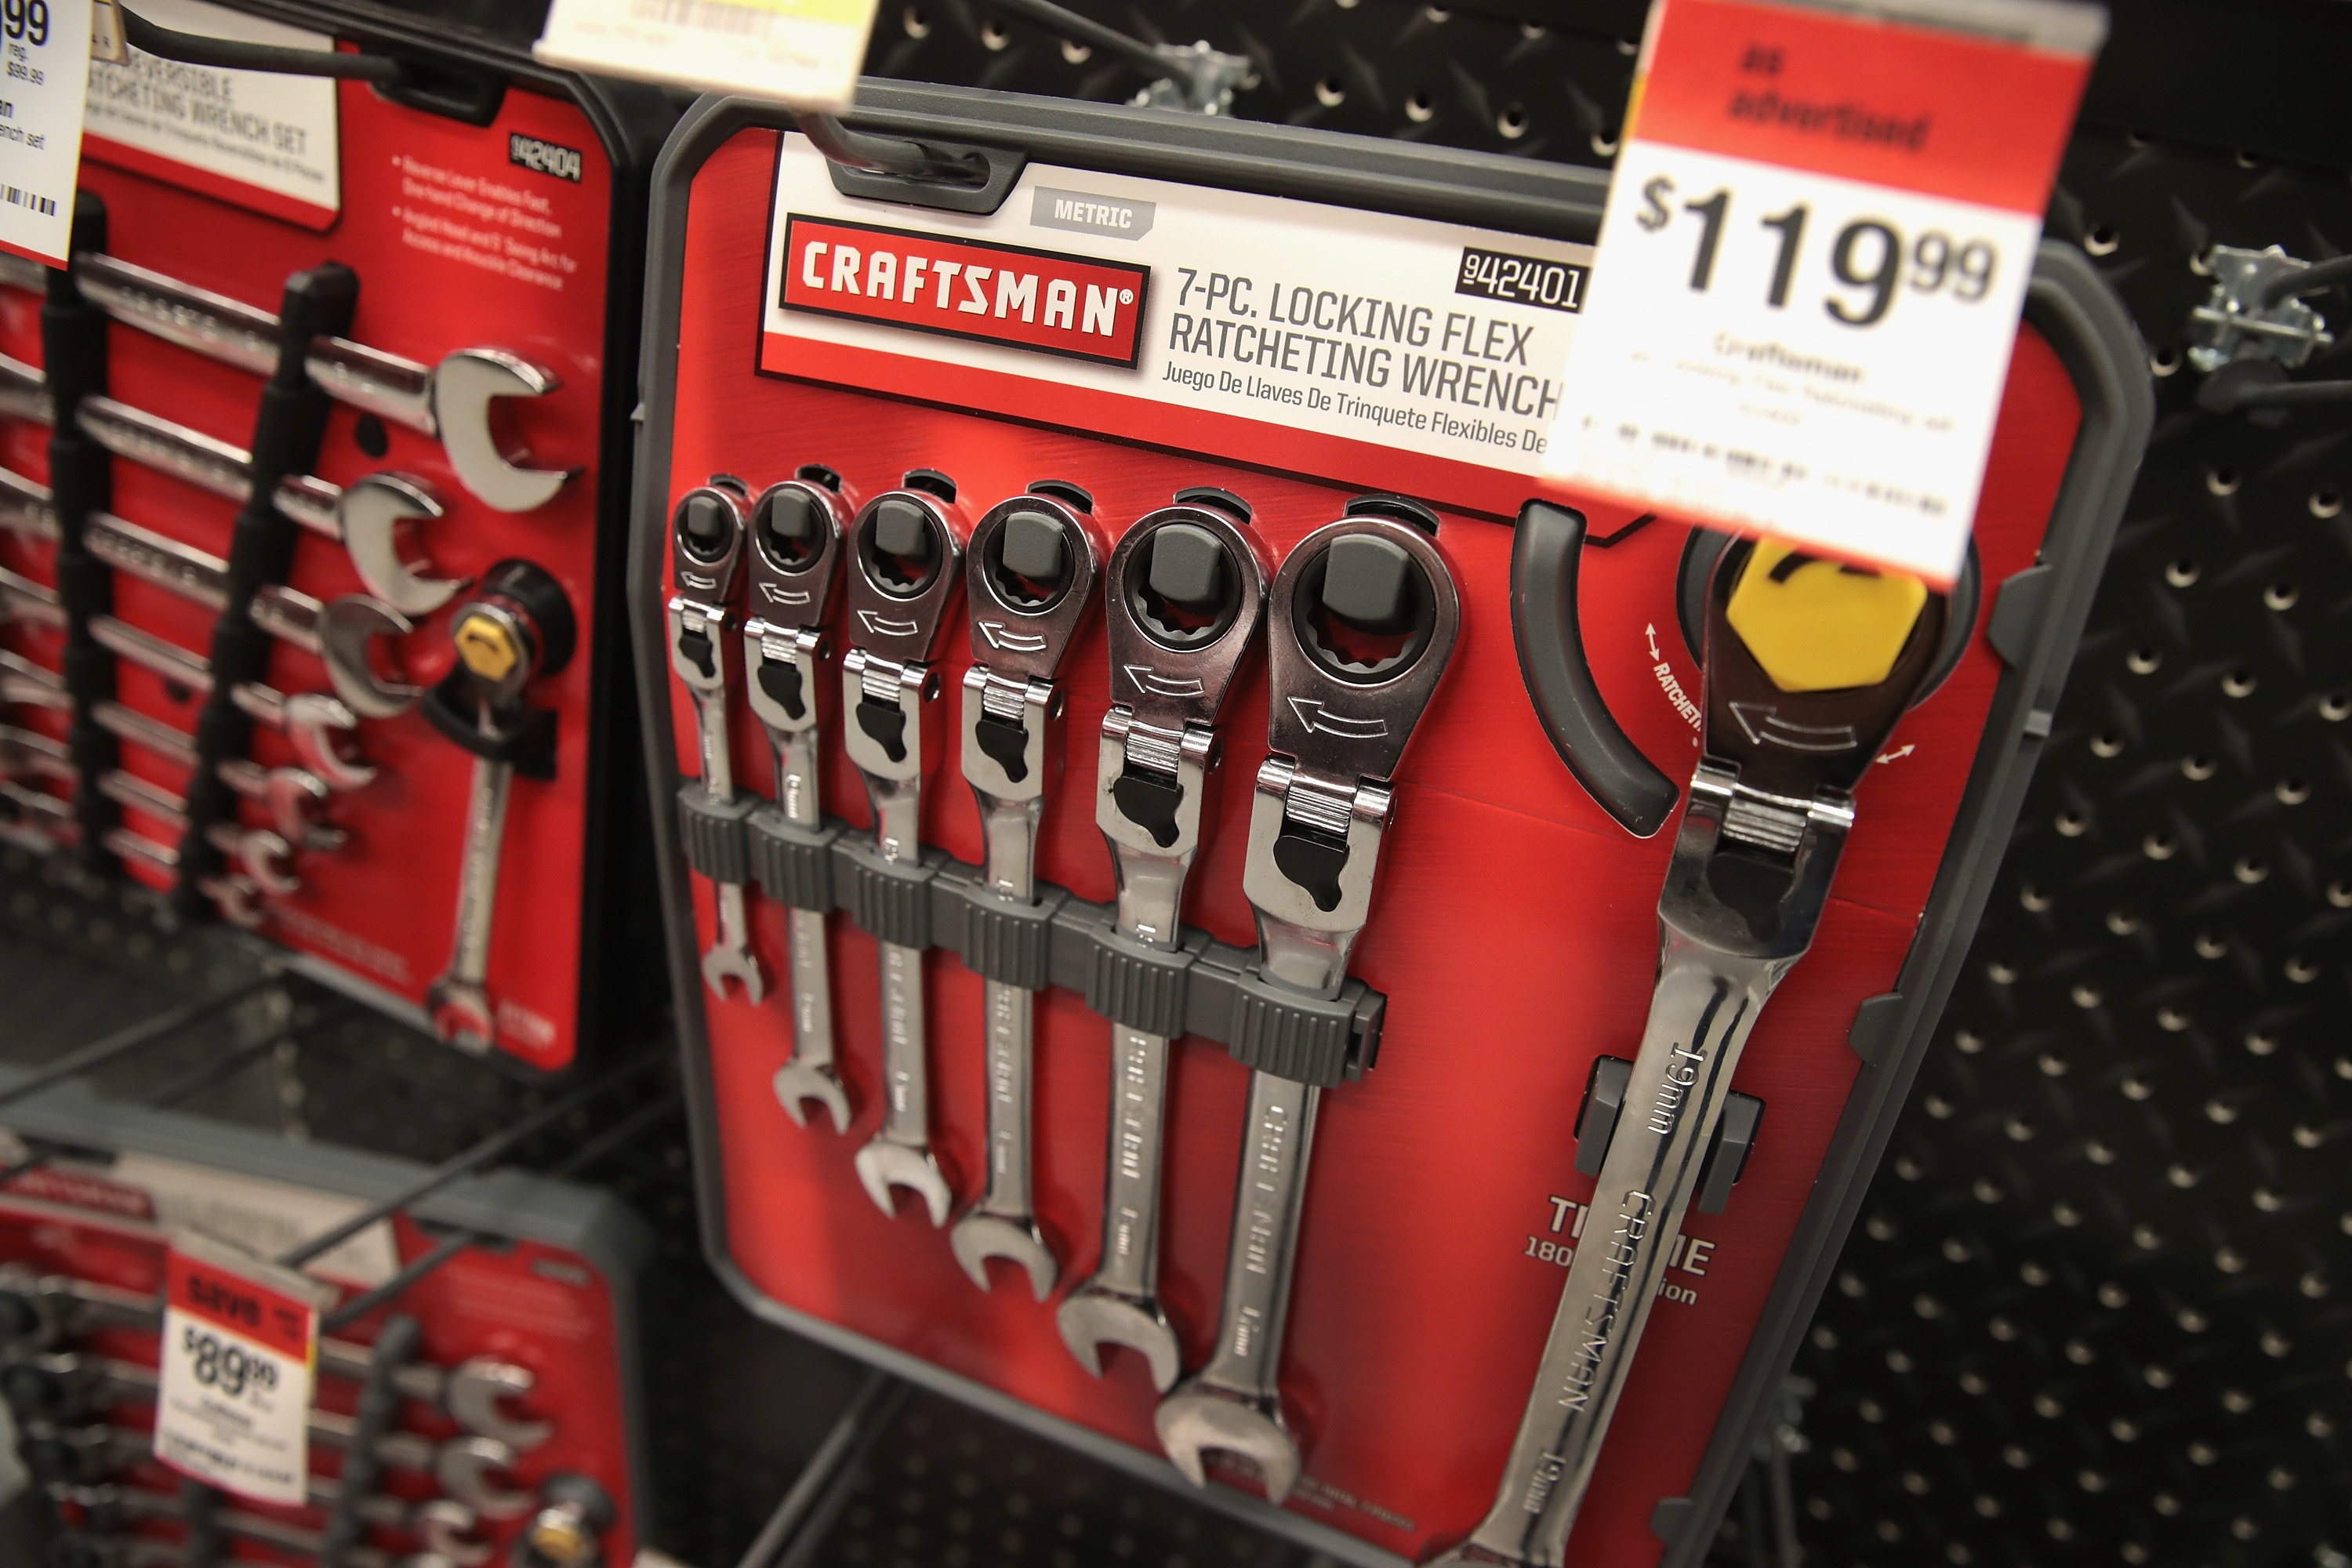 rochester, NY > tools - by owner *** BRAND NEW - FACTORY SEALED *** Sears Craftsman 52 Piece Polished Chrome Wrench Set & Carry Case Get all the Craftsman Combination Wrenches in one set. Includes each and every inch size Craftsman offers as well as each and every metric size Craftsman offers in a raised panel combination wrench.